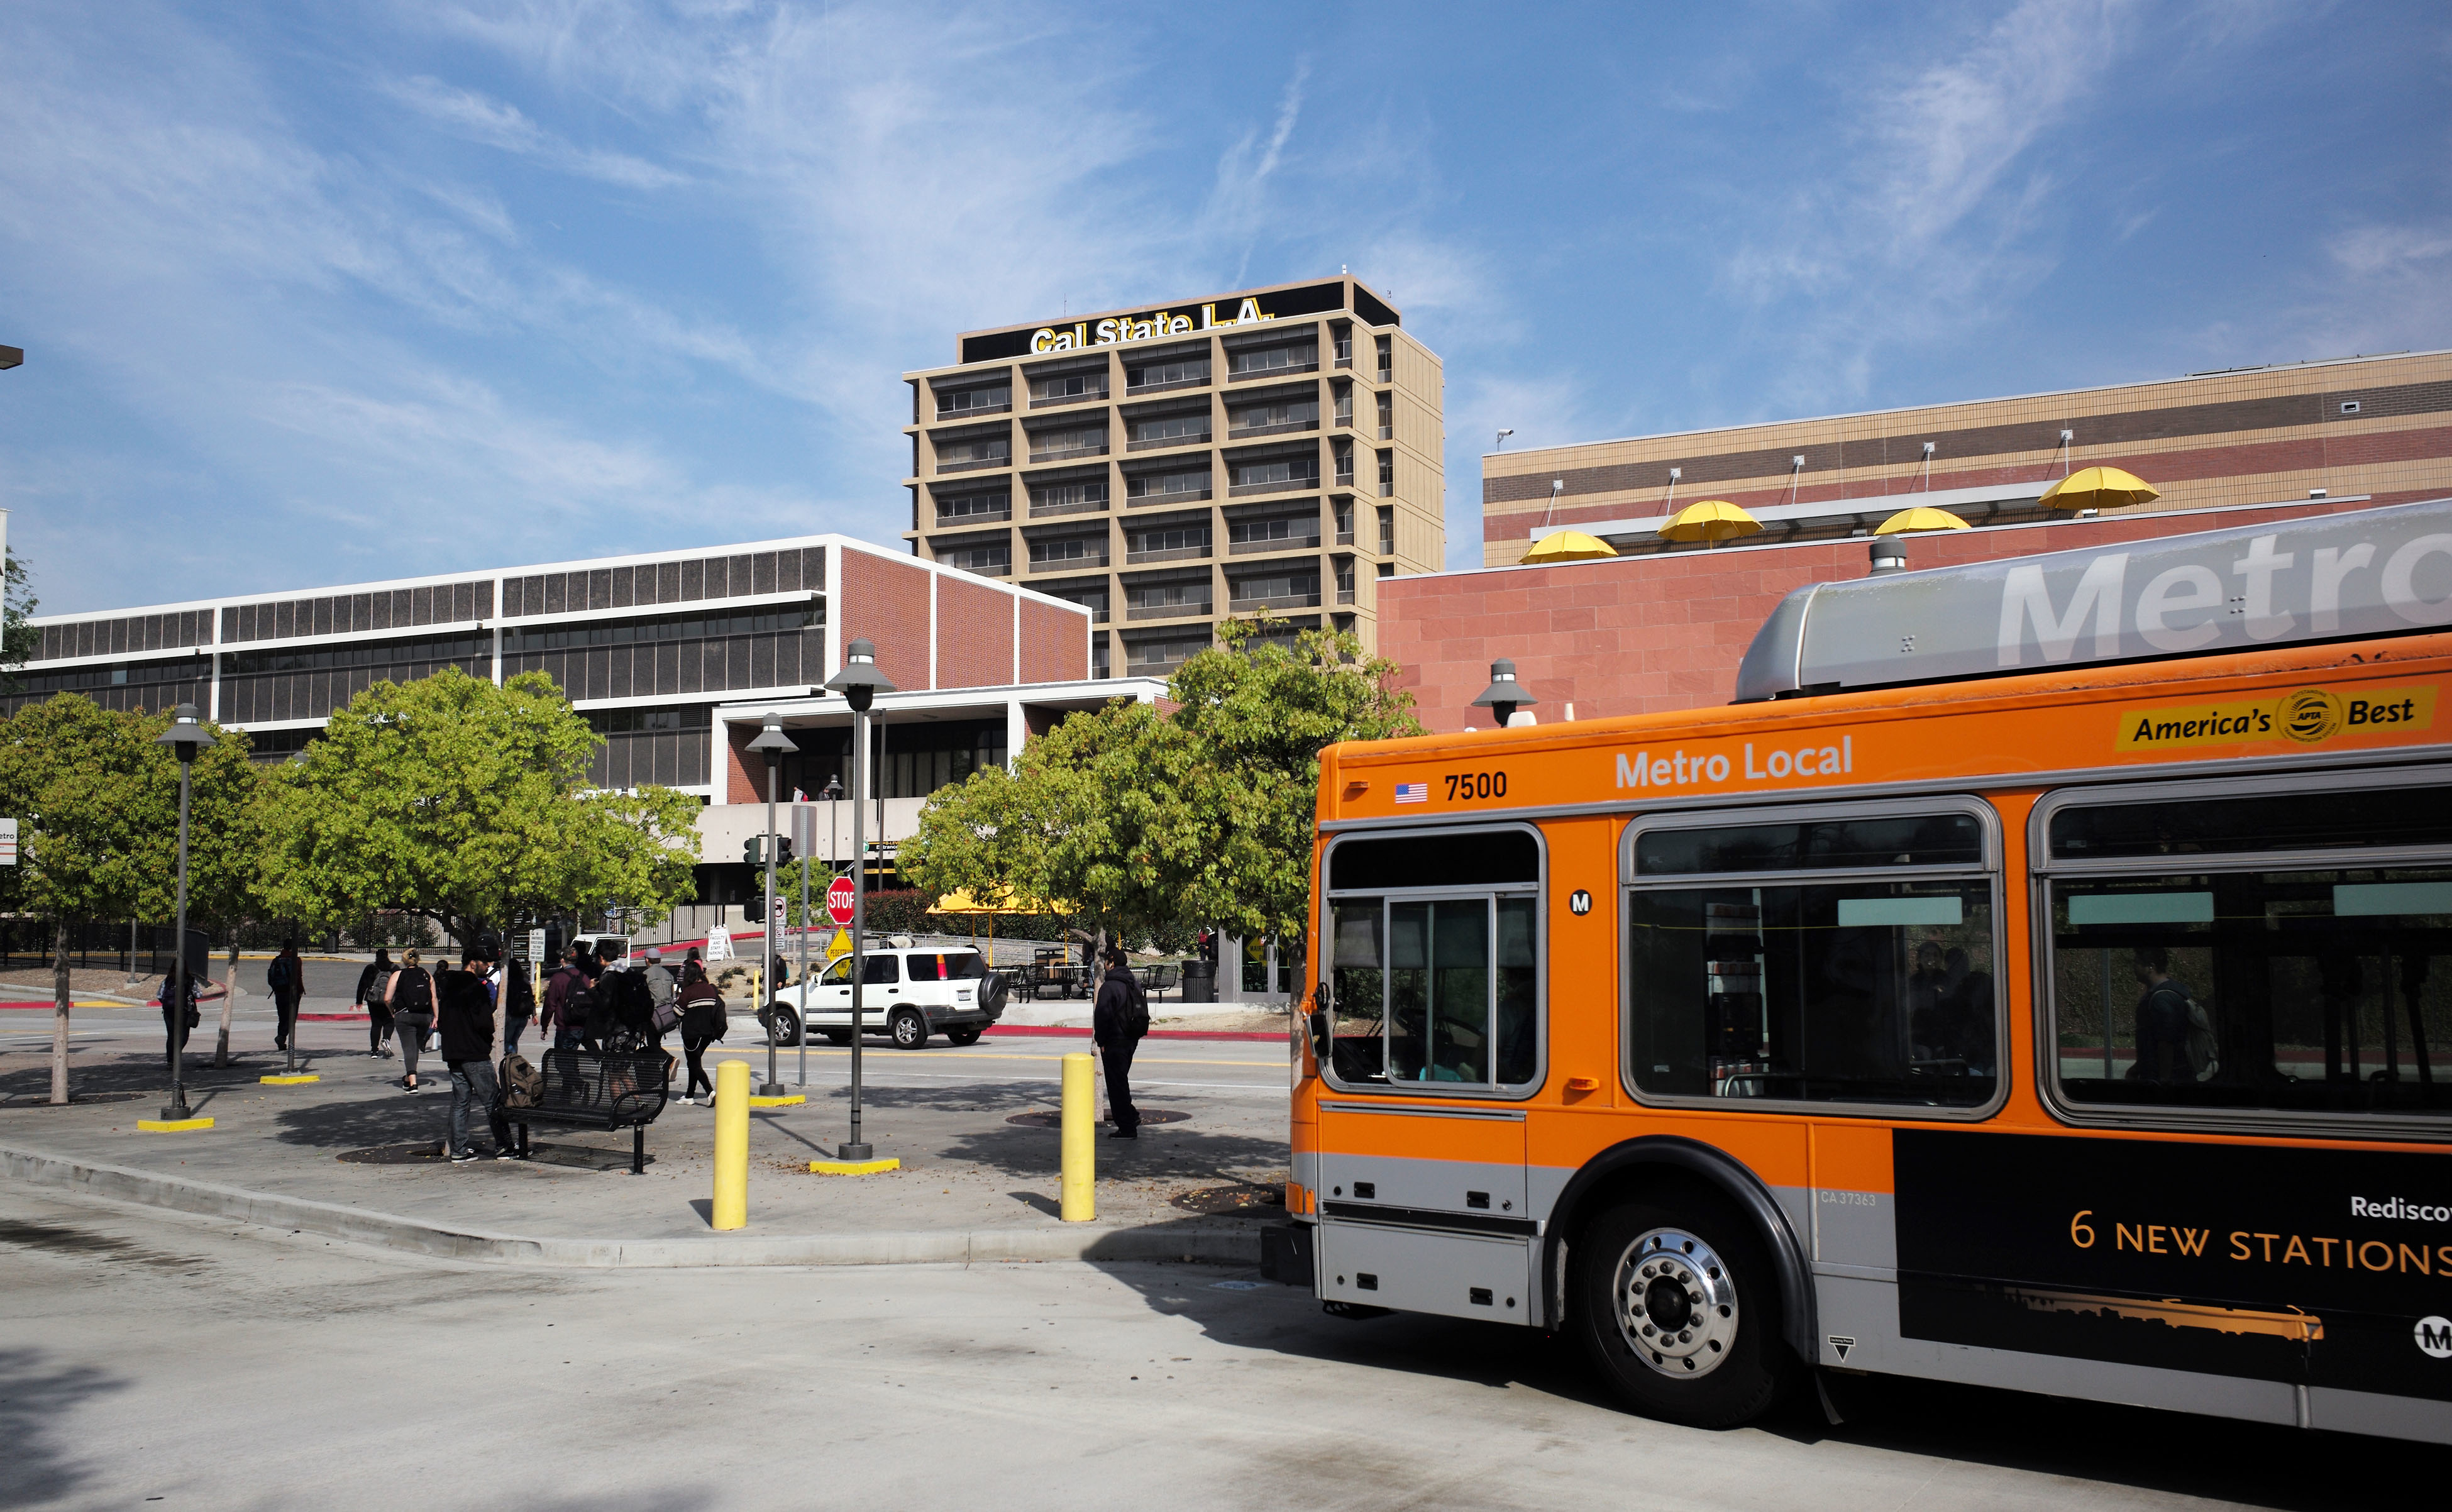 Cal State LA Transit Center